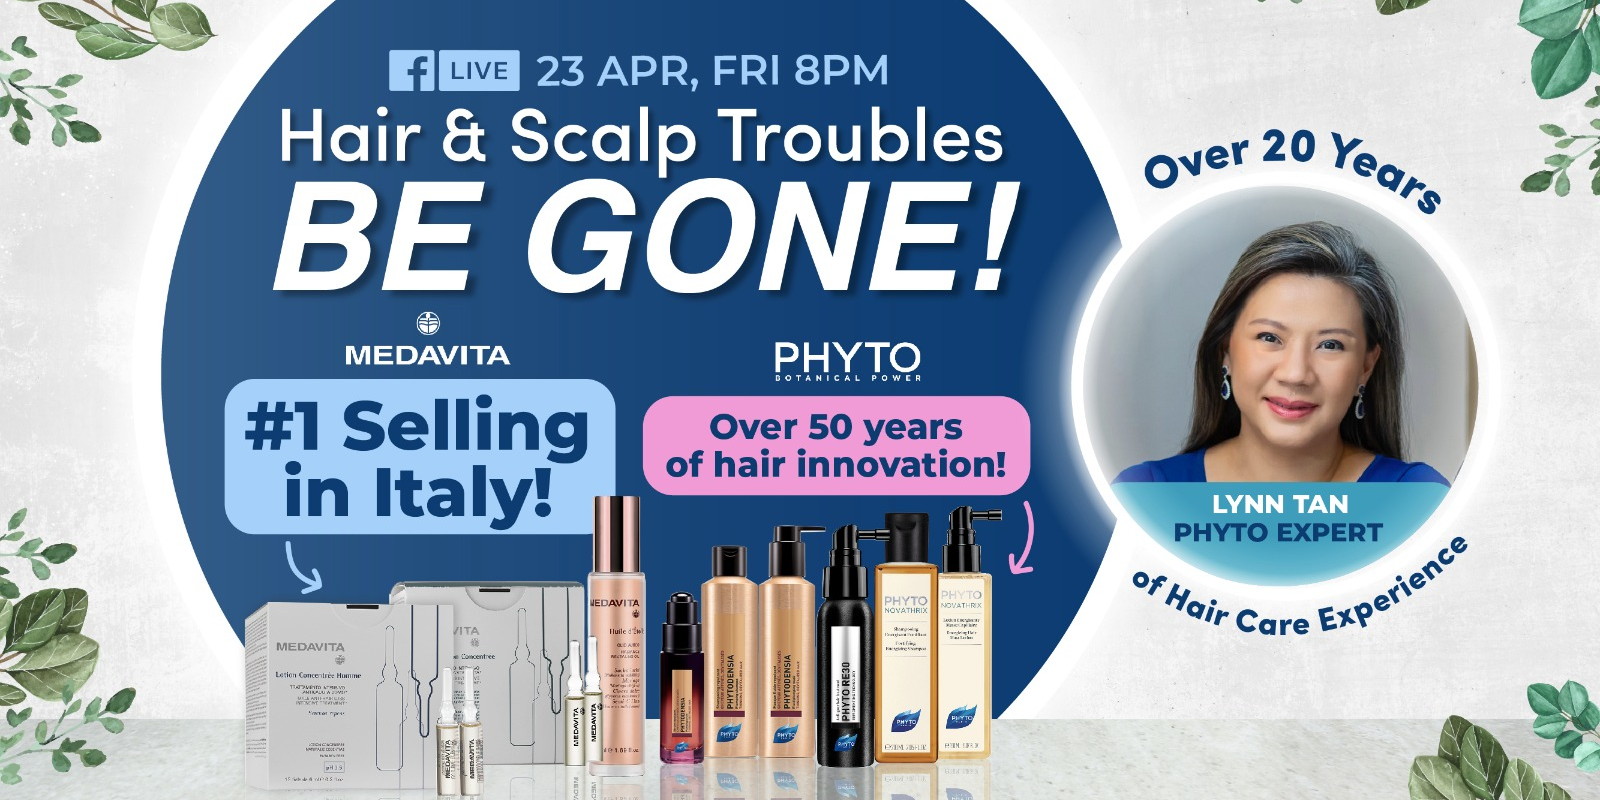 Hair & Scalp Troubles Be Gone!